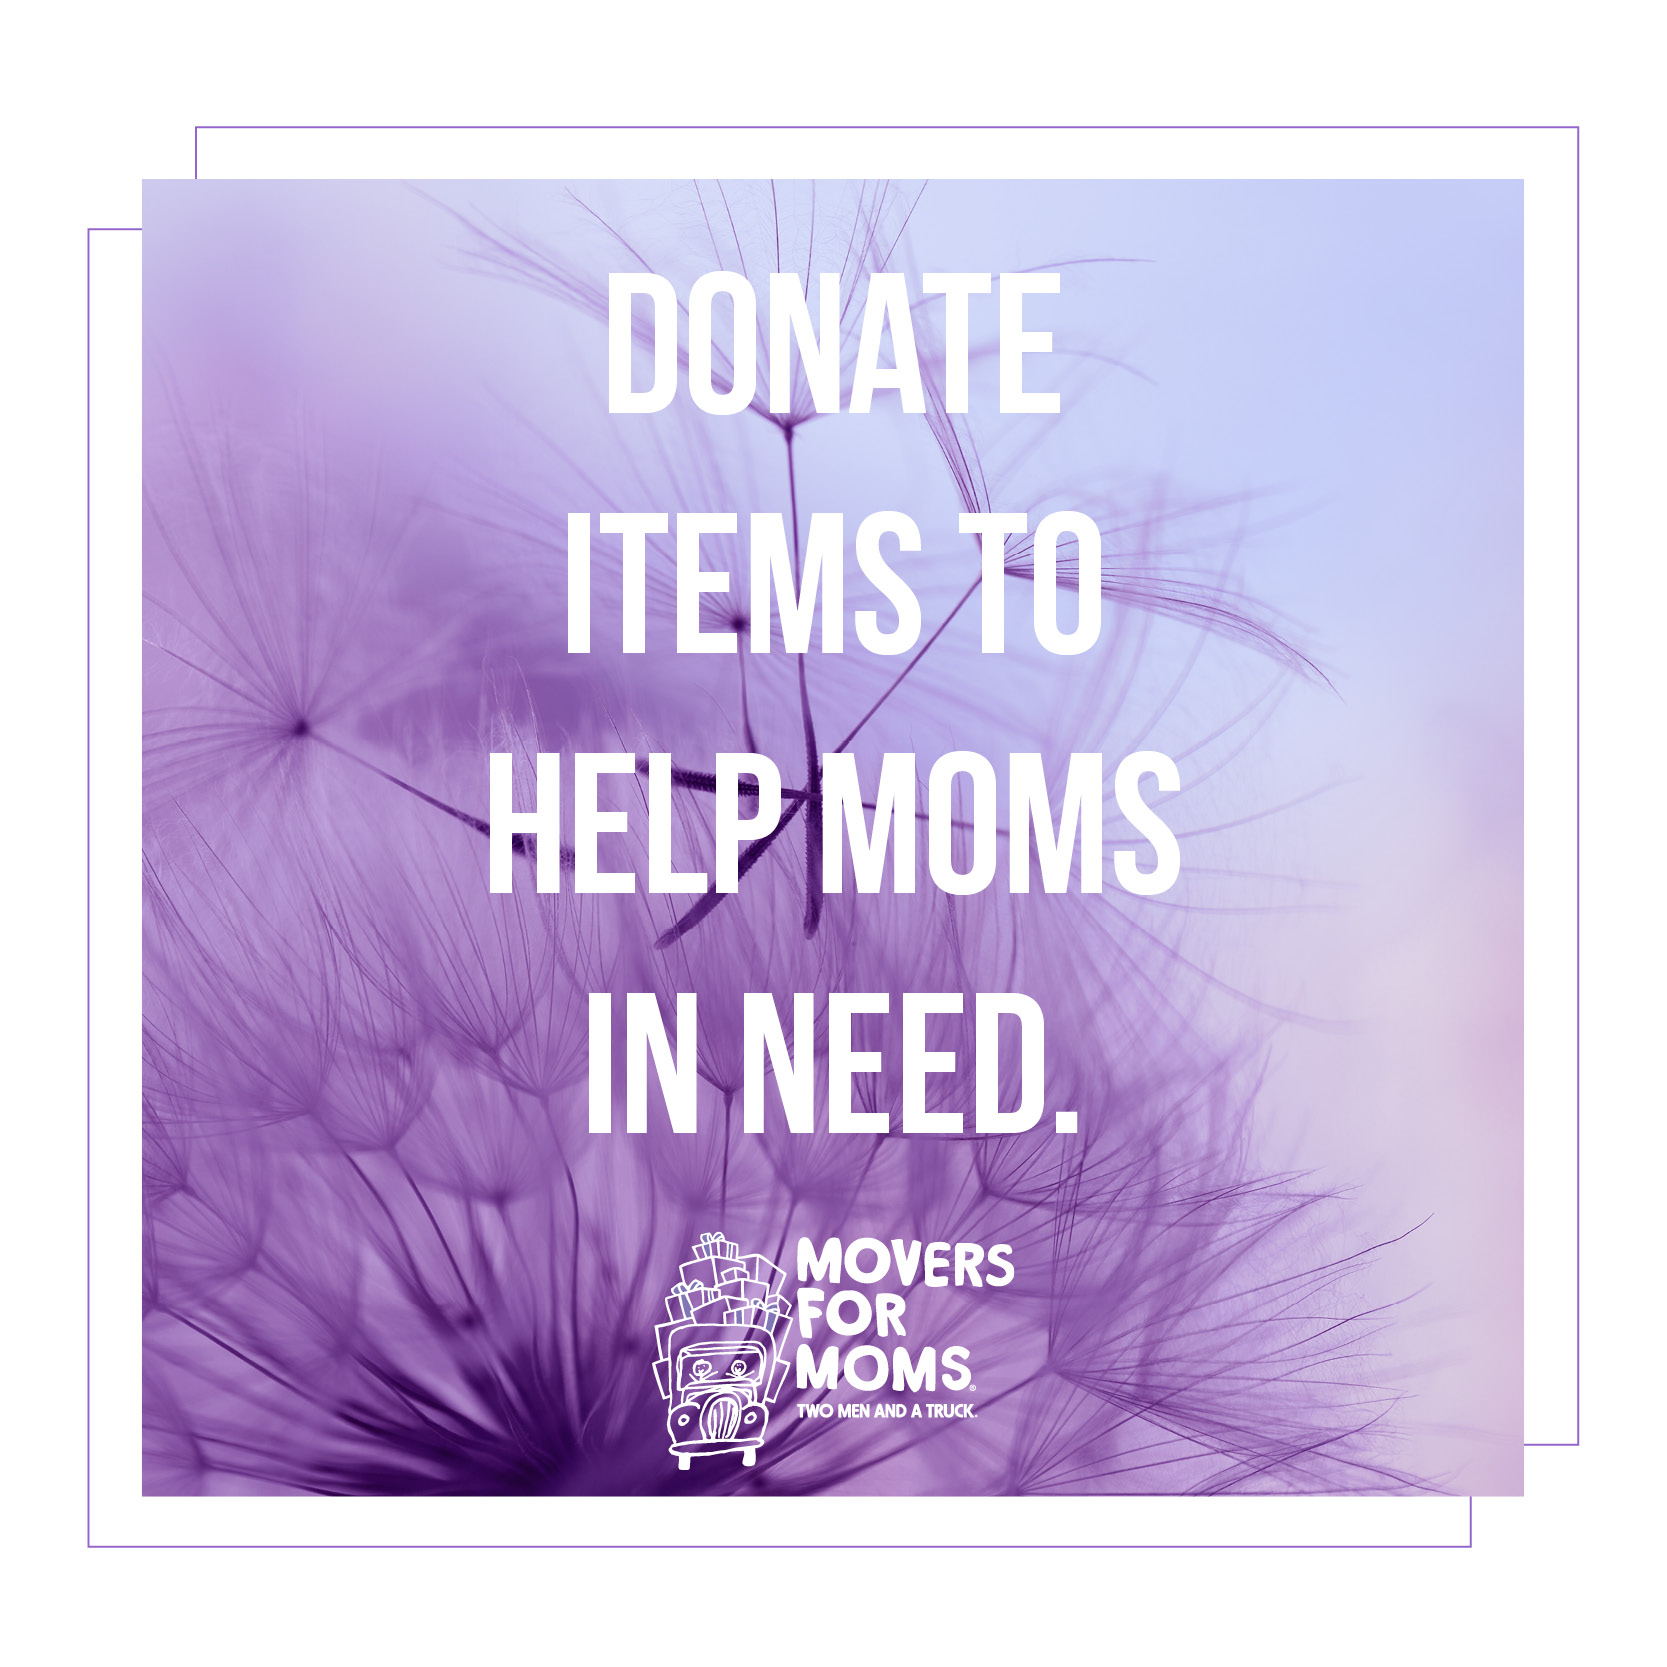 Support Movers for Moms in your community